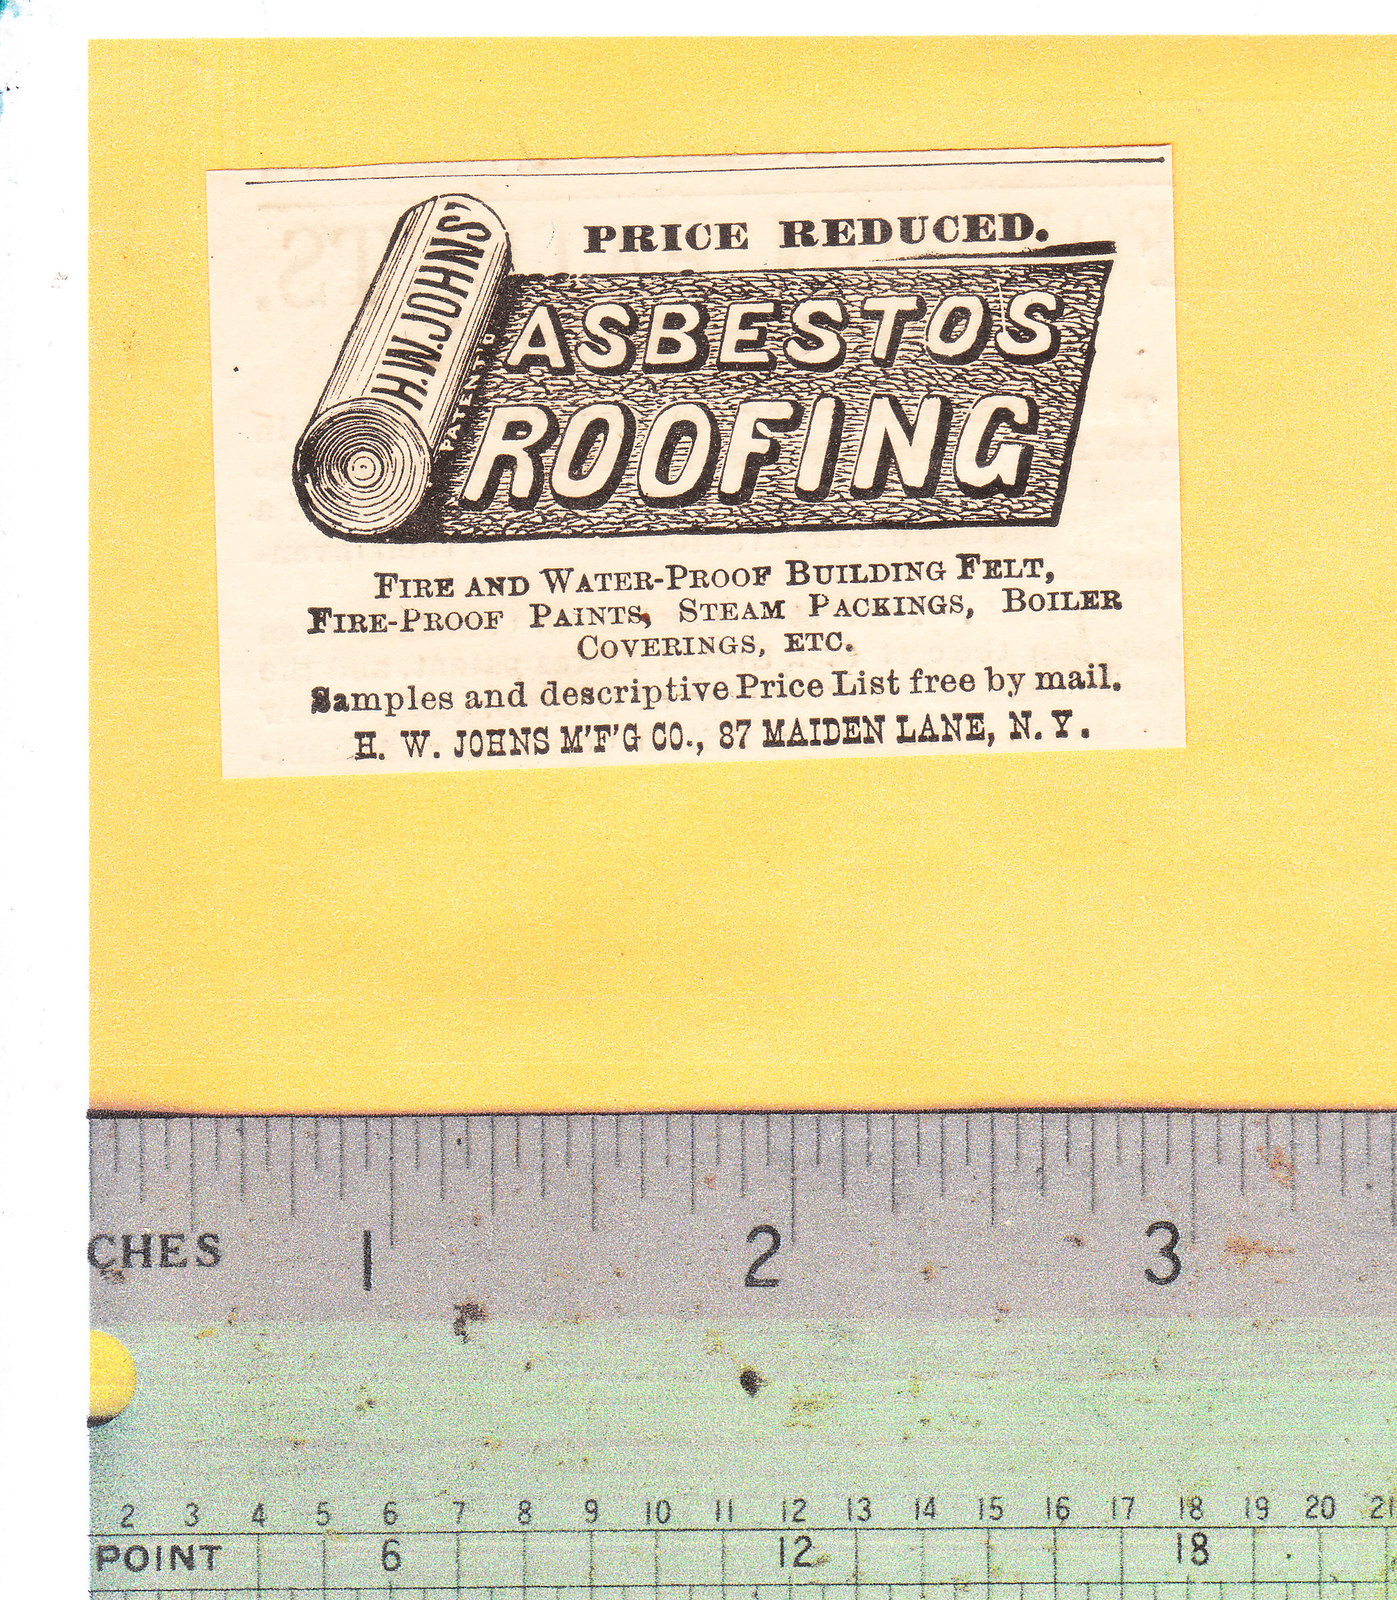 1887 Asbestos Roofing H. W. Johns Mfg Co Advertisement - $15.00